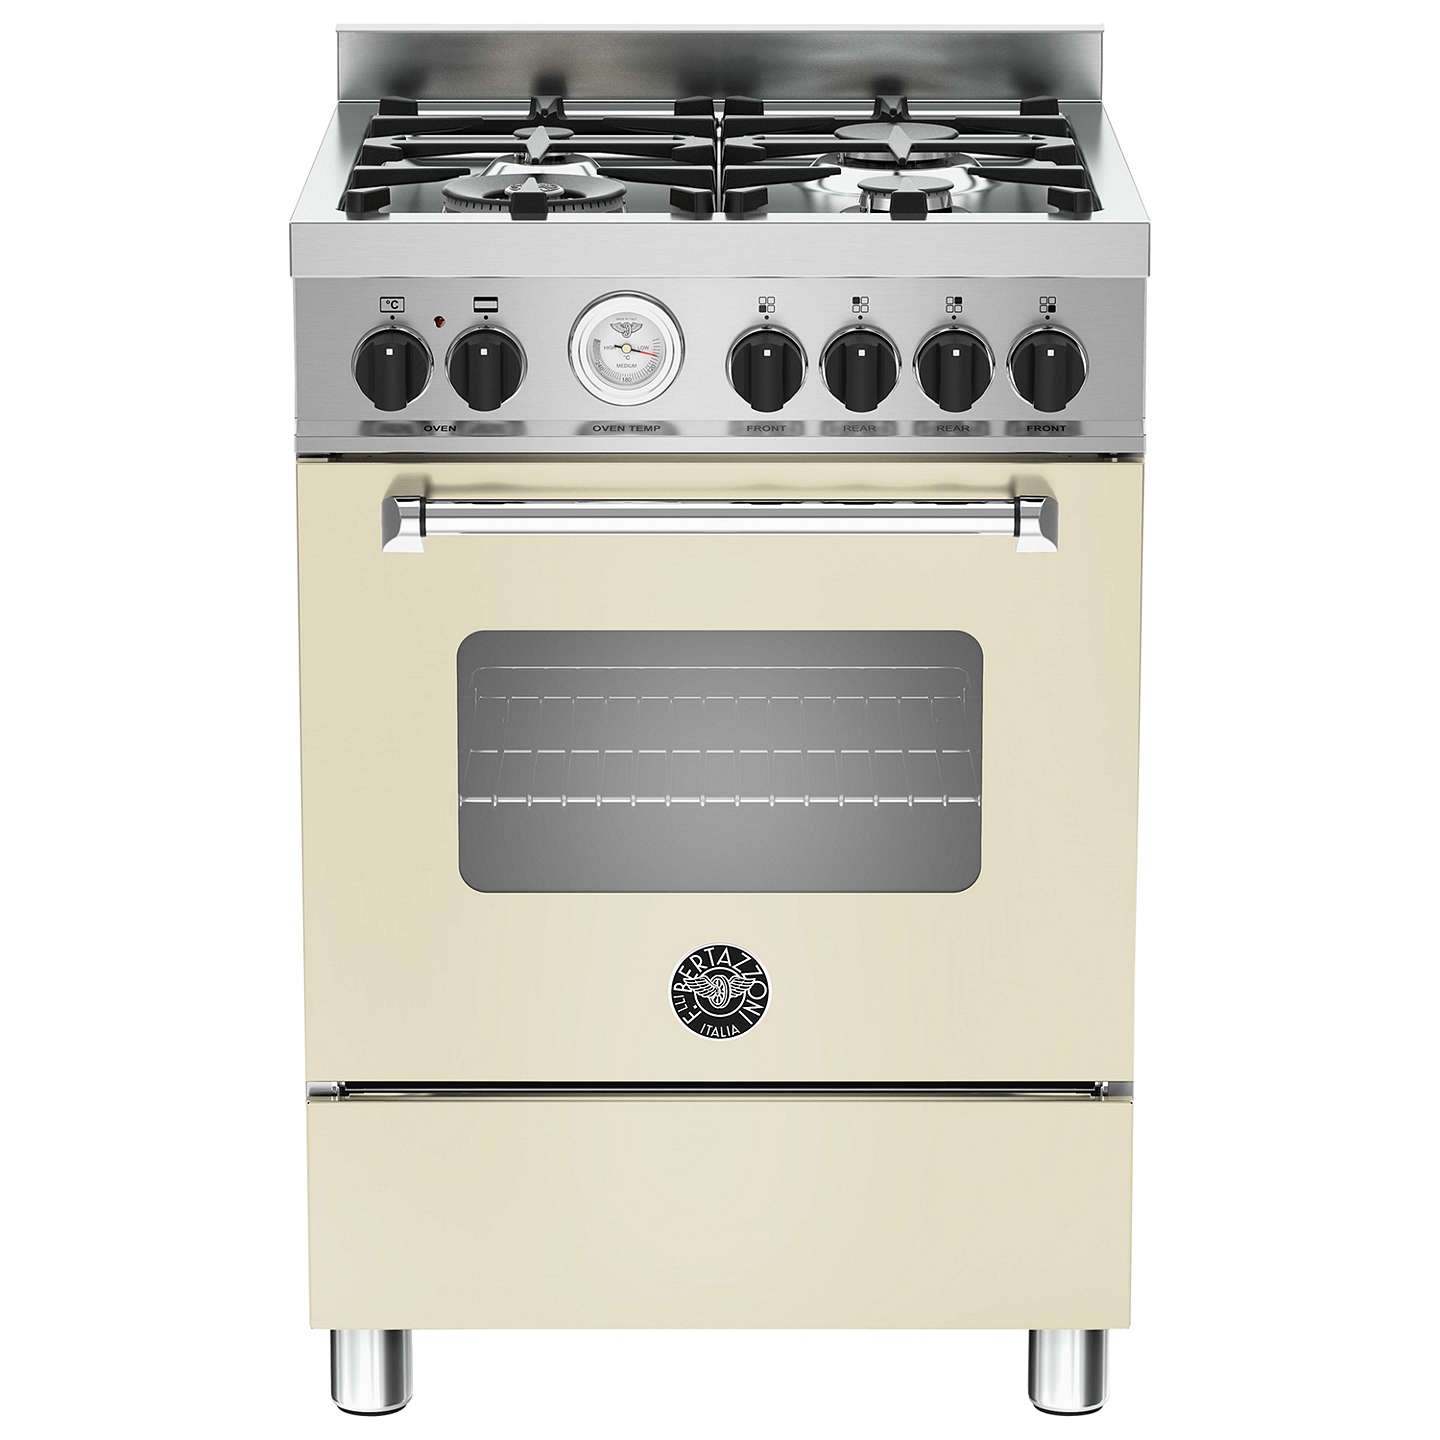 BuyBertazzoni MAS604MFESCRE Cooker, Cream Online at johnlewis.com